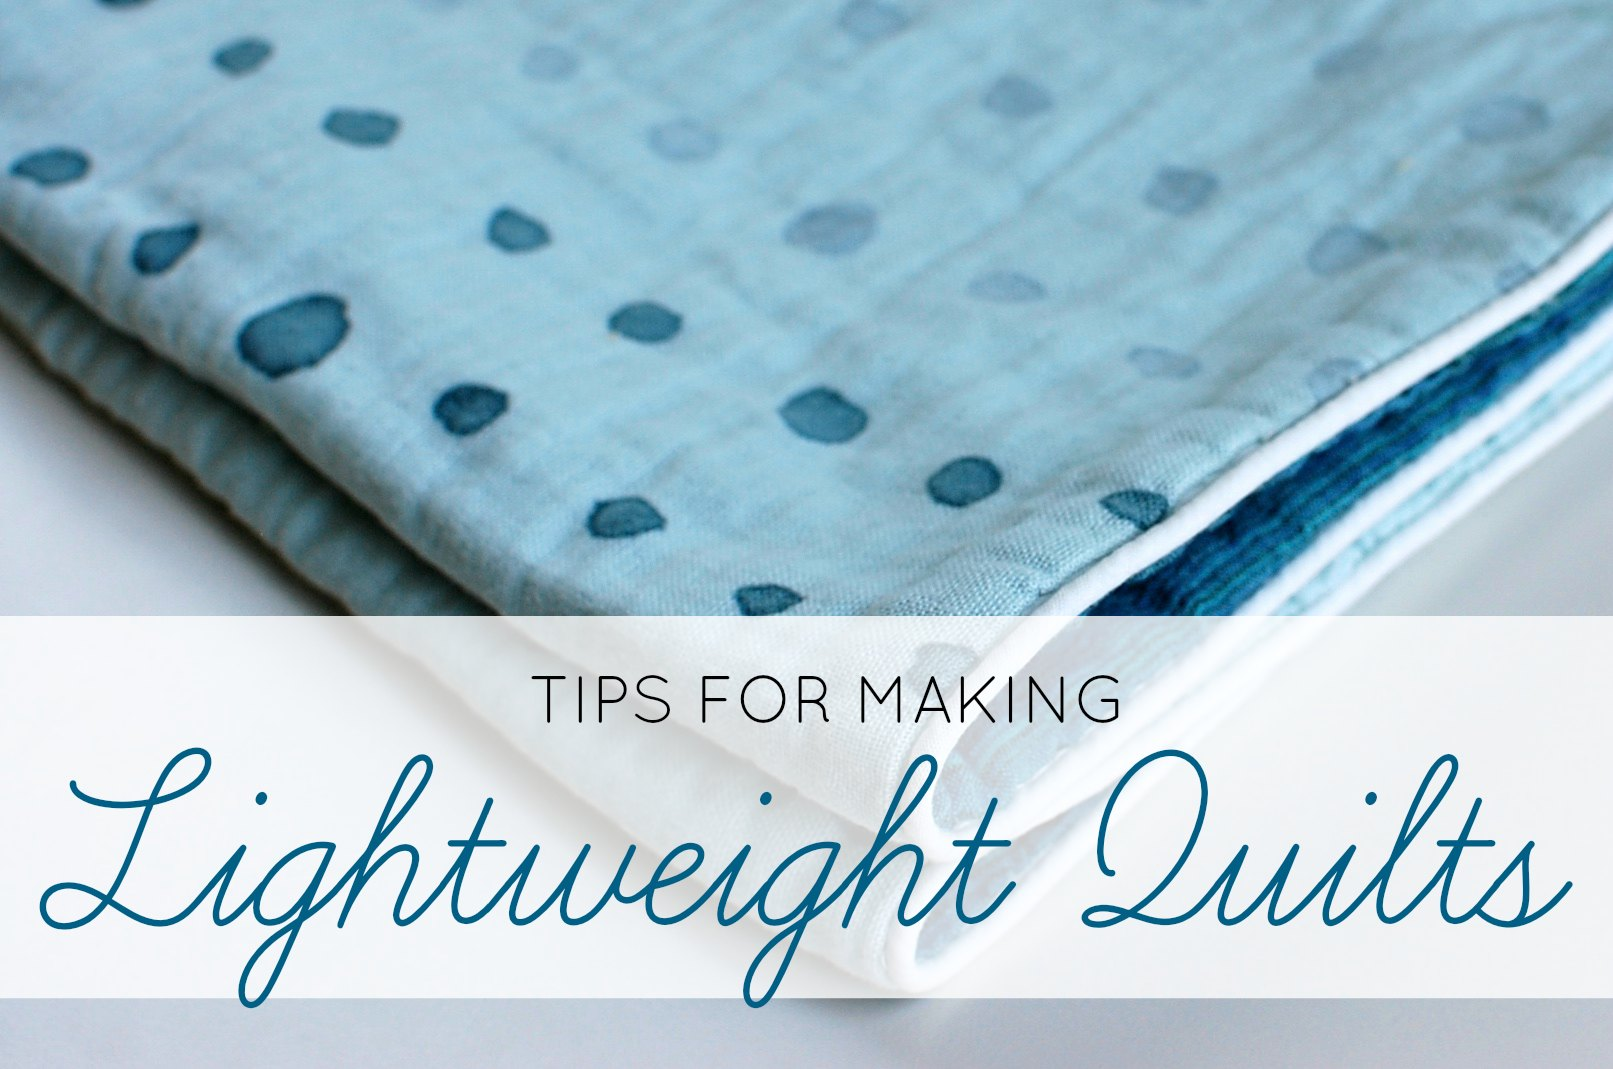 Tips for making lightweight quilts